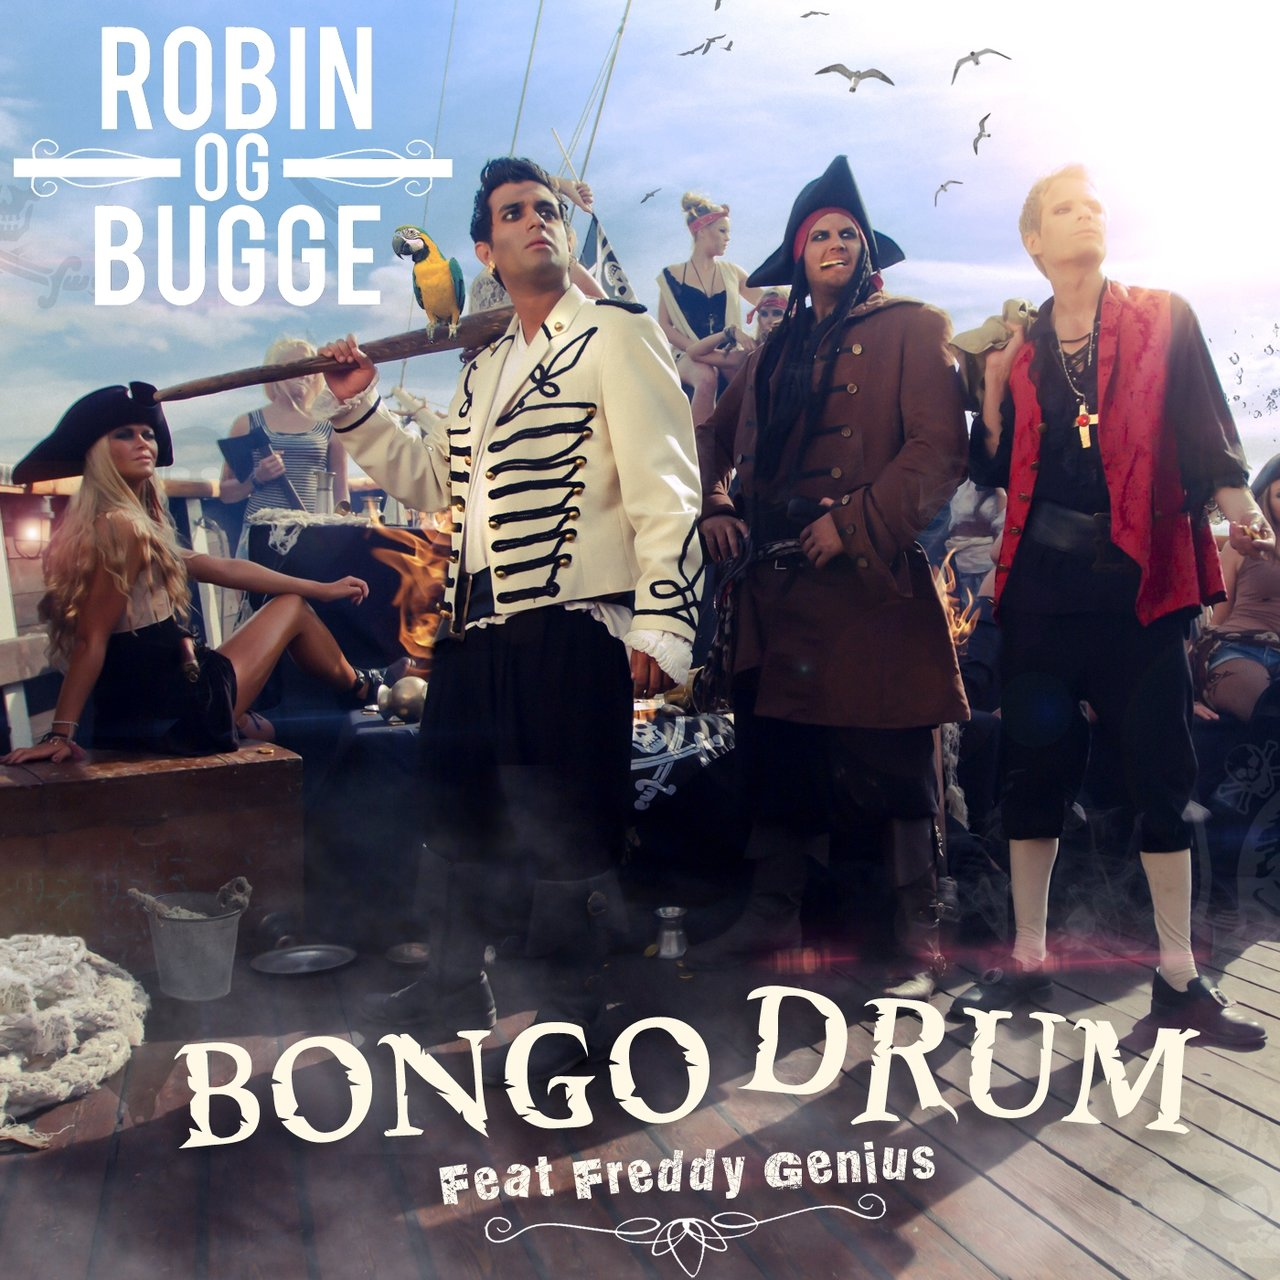 Bongo Drum (feat. Freddy Genius)